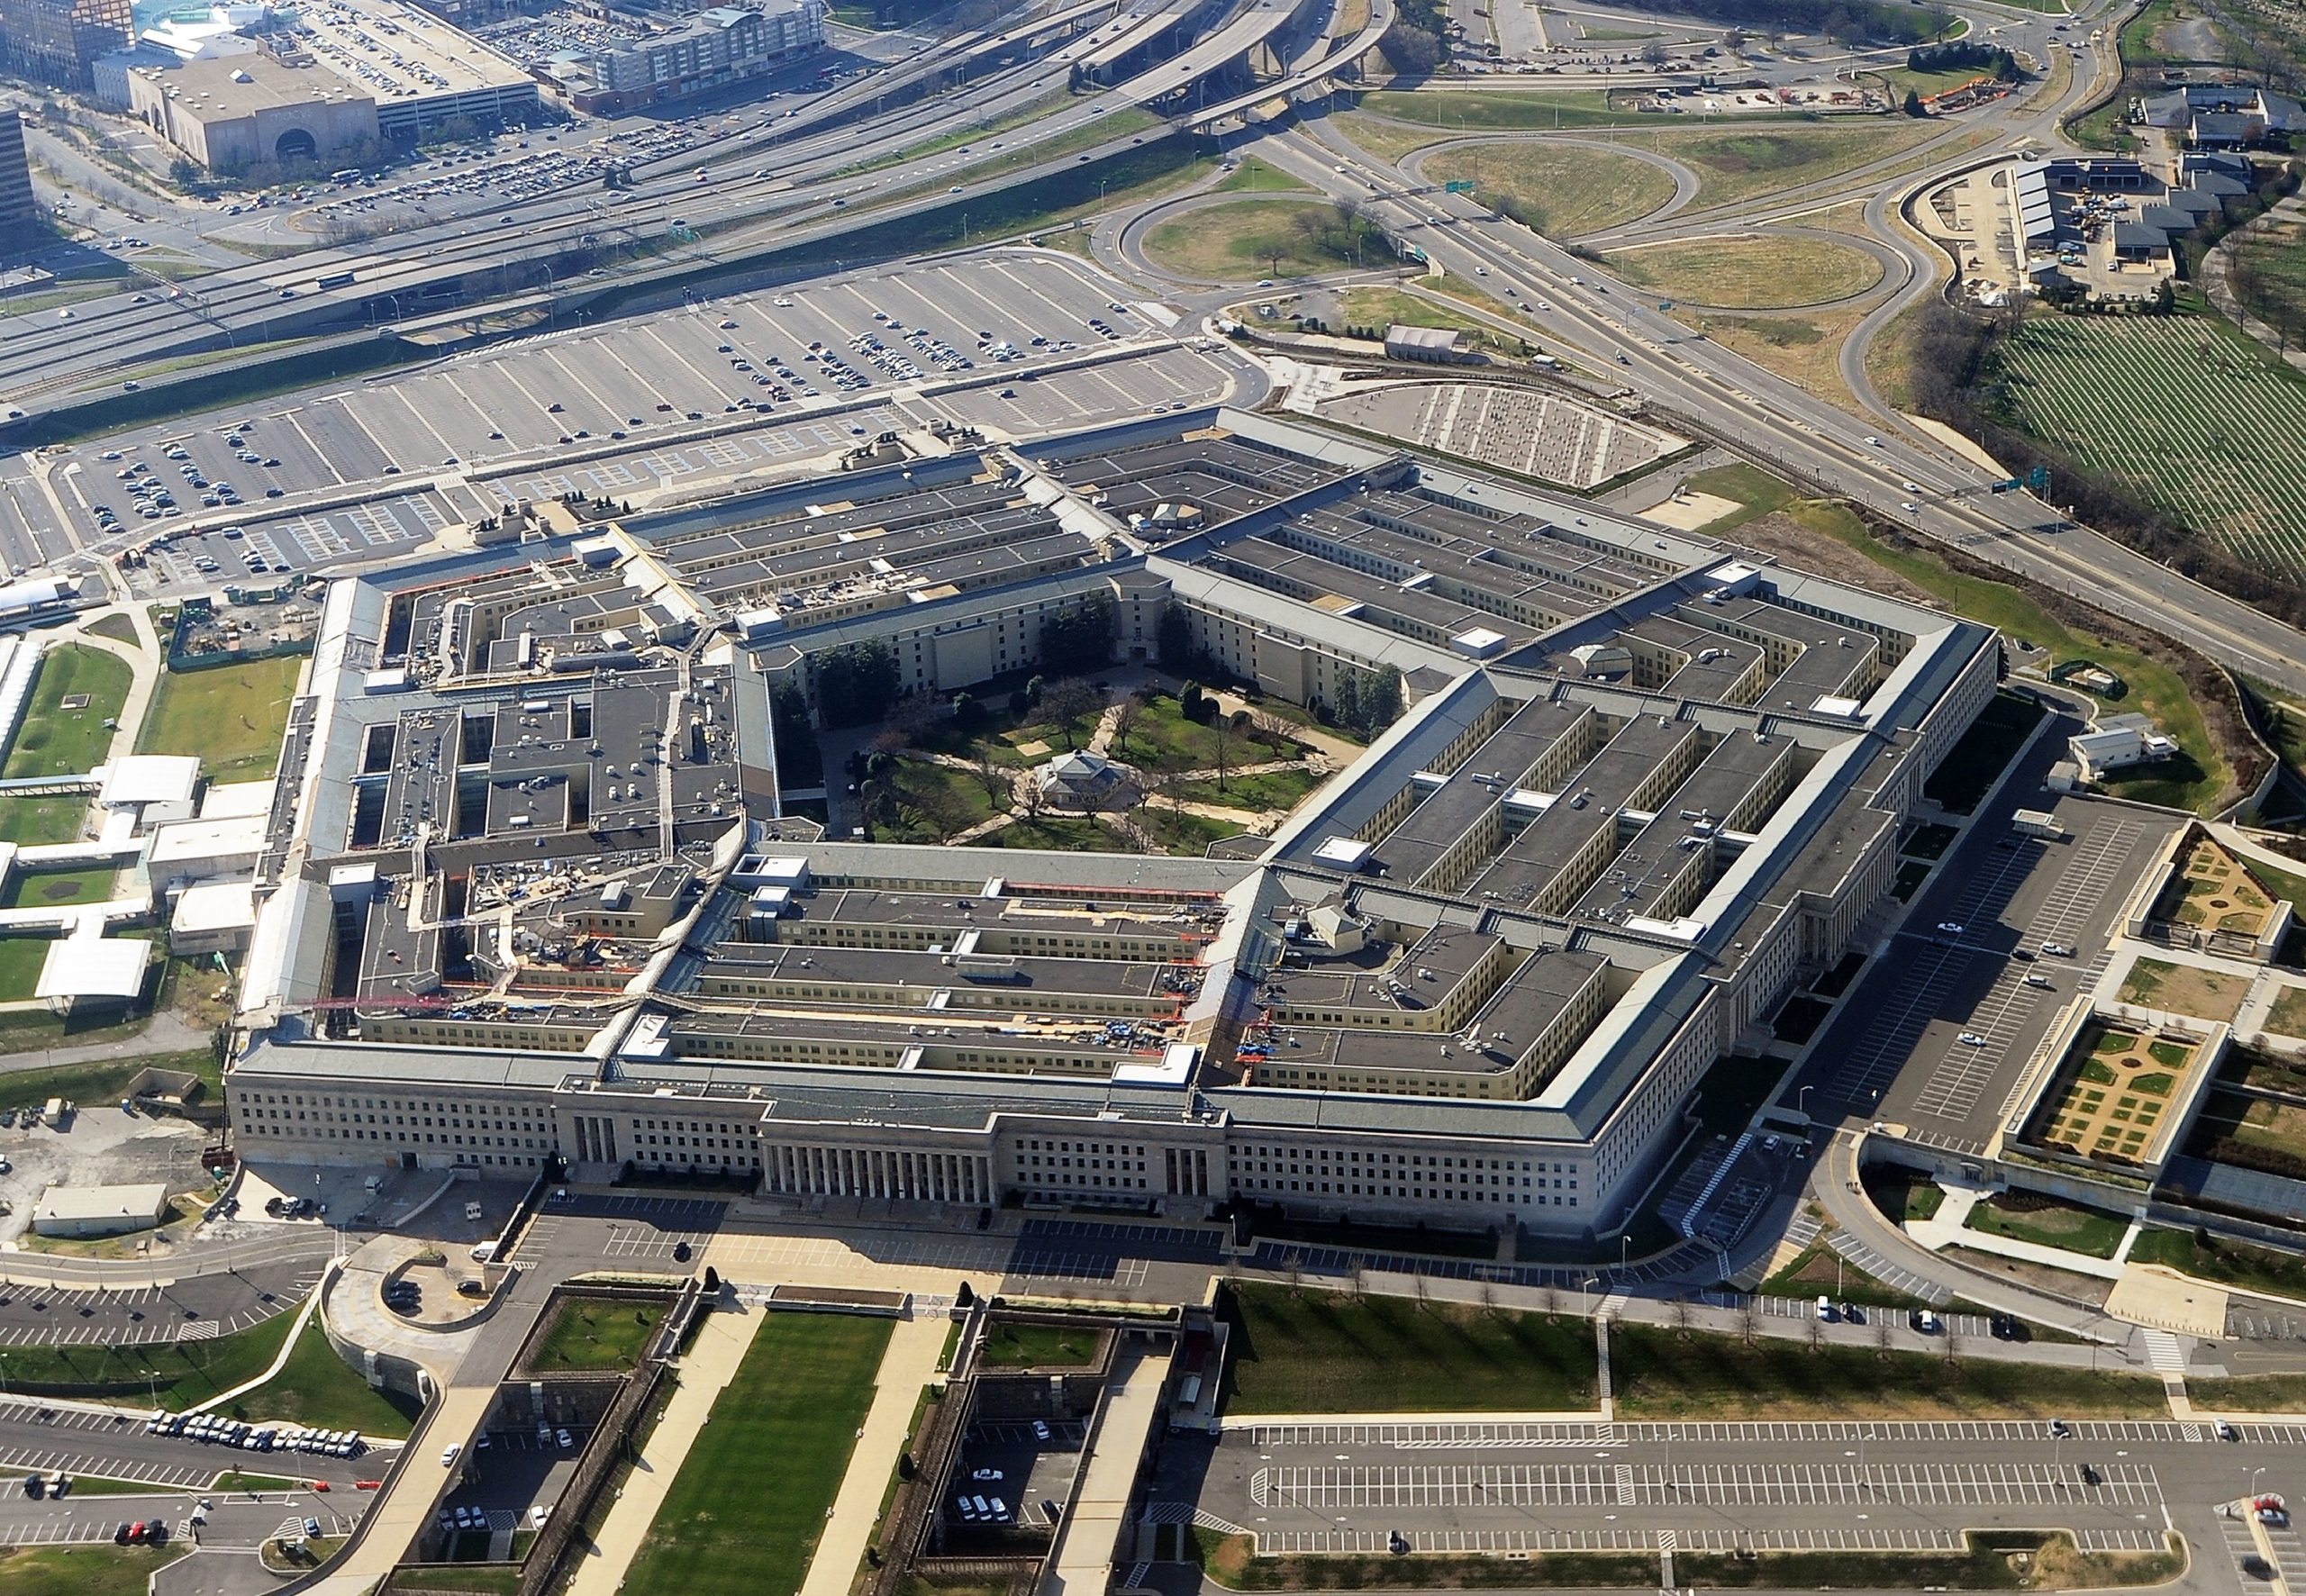 This picture taken 26 December 2011 shows the Pentagon building in Washington, DC. The Pentagon, which is the headquarters of the United States Department of Defense (DOD), is the world's largest office building by floor area, with about 6,500,000 sq ft (600,000 m2), of which 3,700,000 sq ft (340,000 m2) are used as offices. Approximately 23,000 military and civilian employees and about 3,000 non-defense support personnel work in the Pentagon. AFP PHOTO (Photo by STAFF / AFP) (Photo by STAFF/AFP via Getty Images)